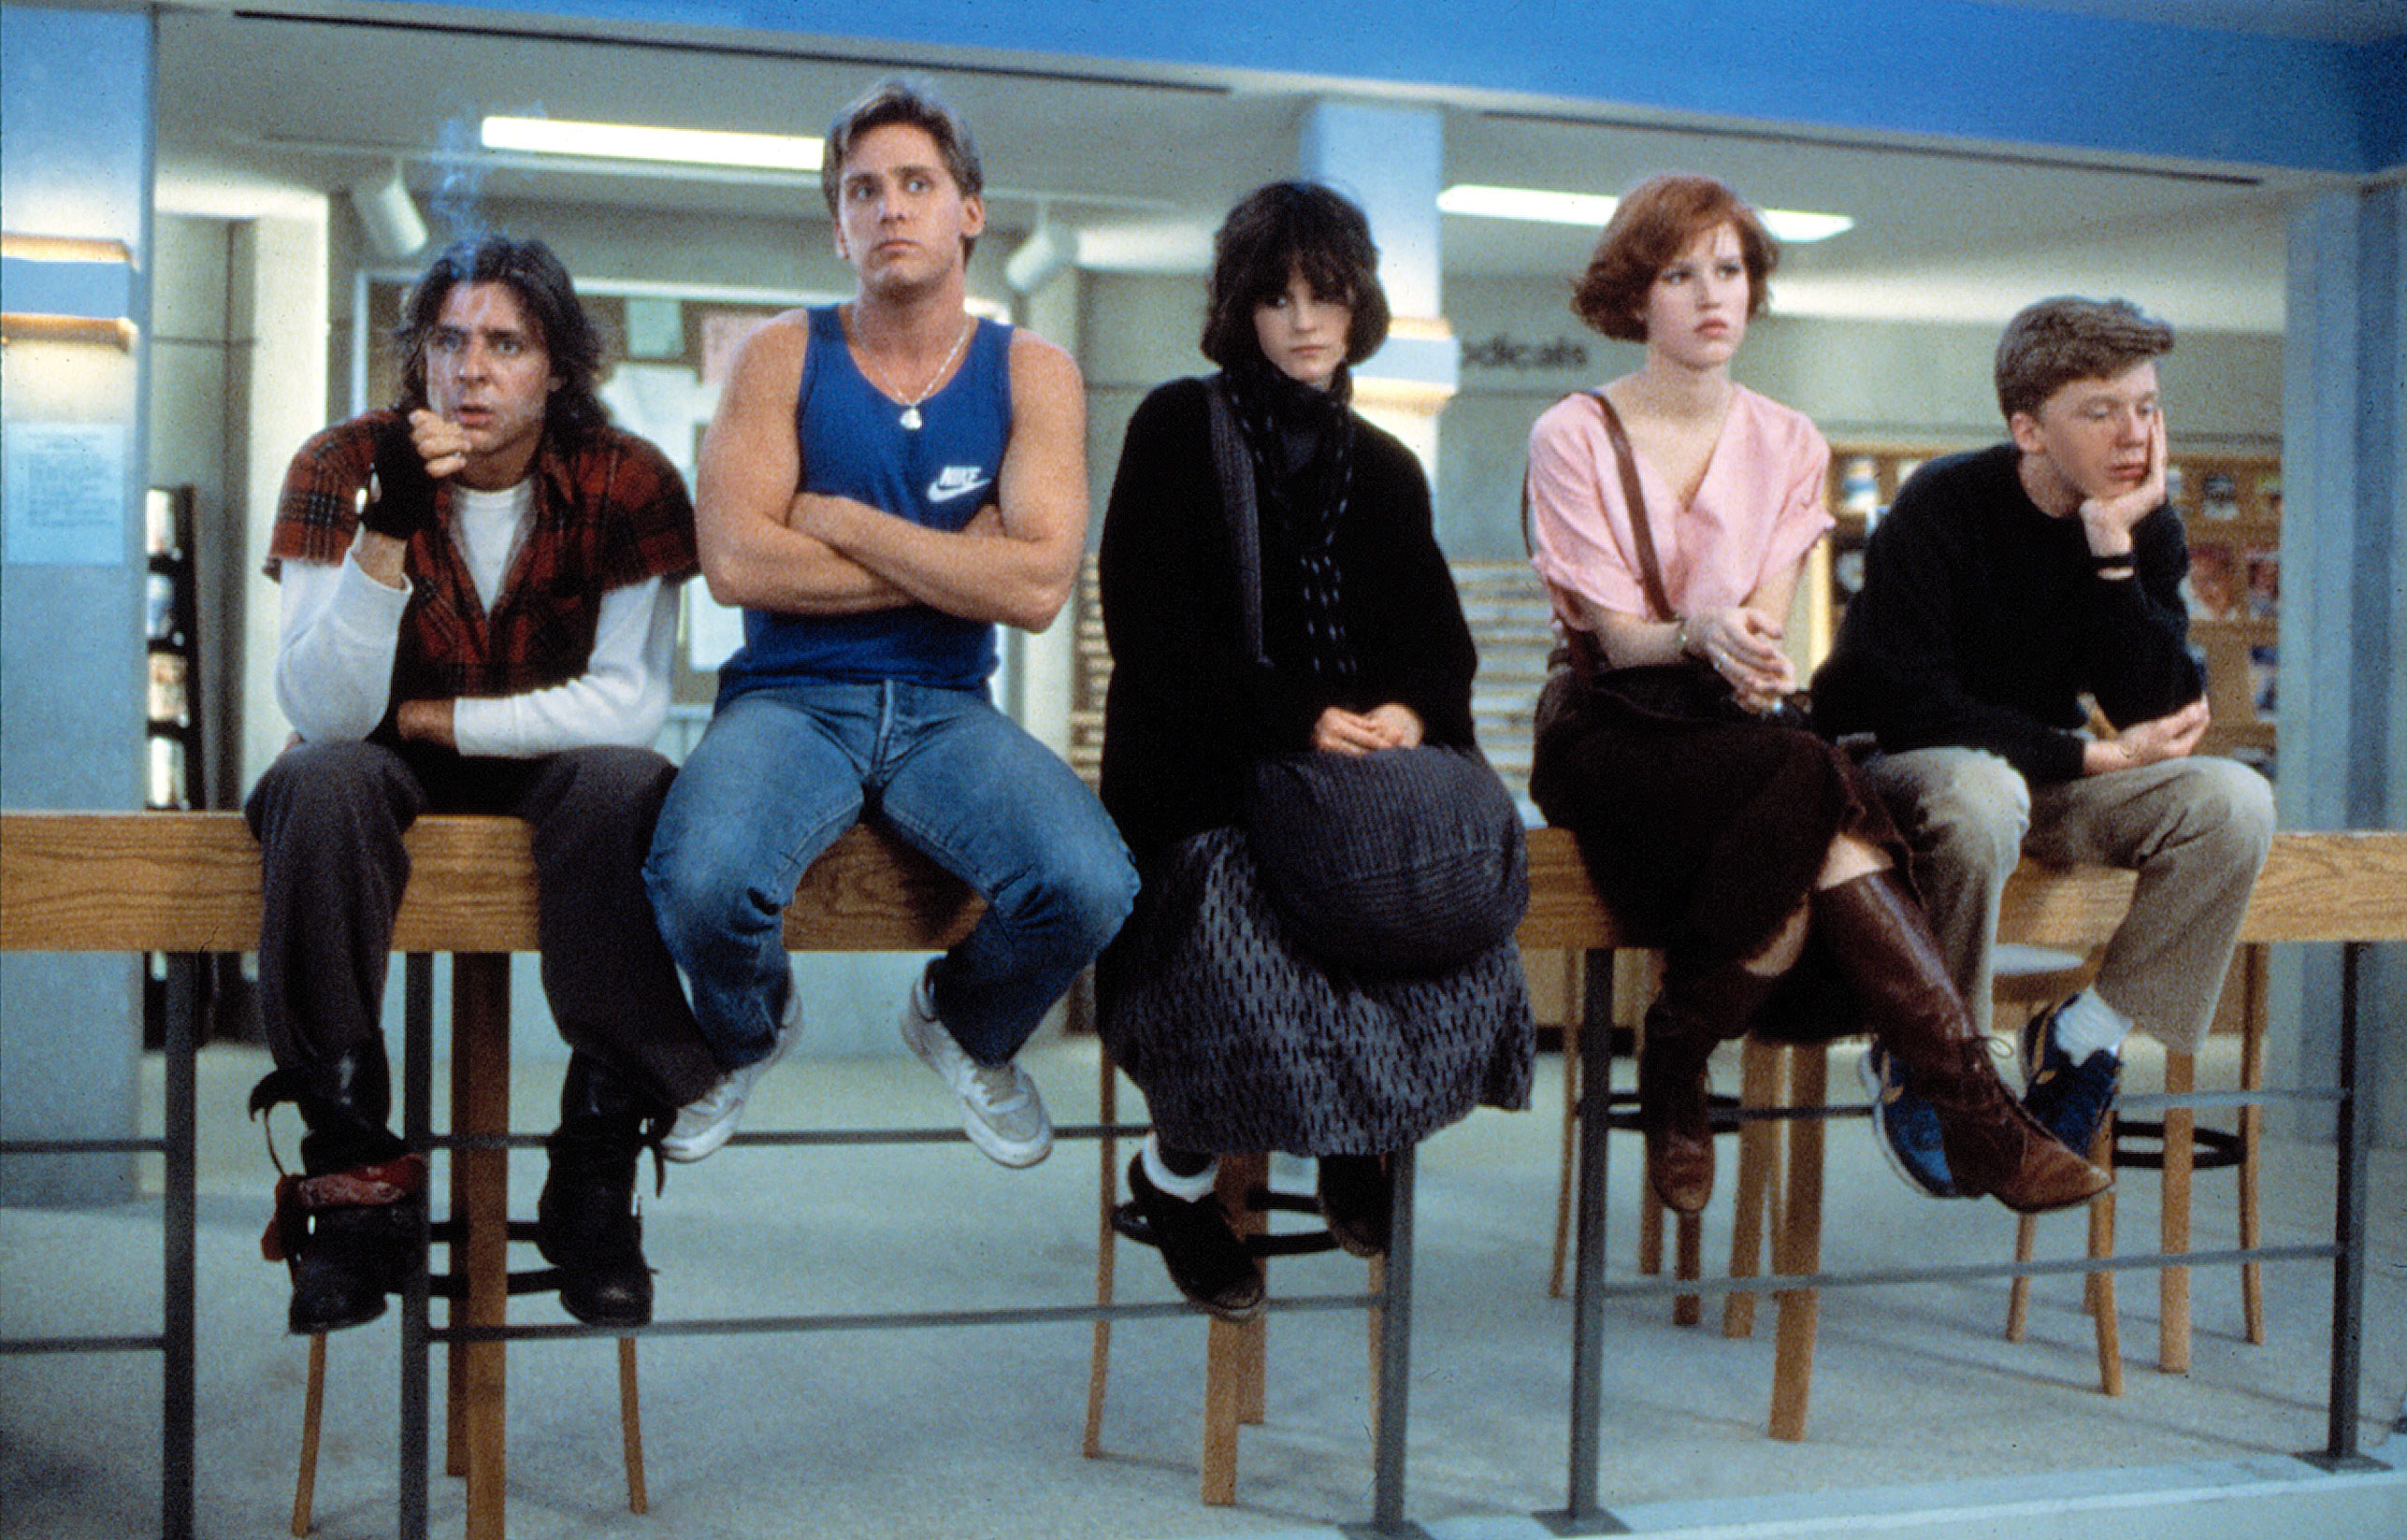 Photo of Breakfast Club cast sitting on a handrail in the library